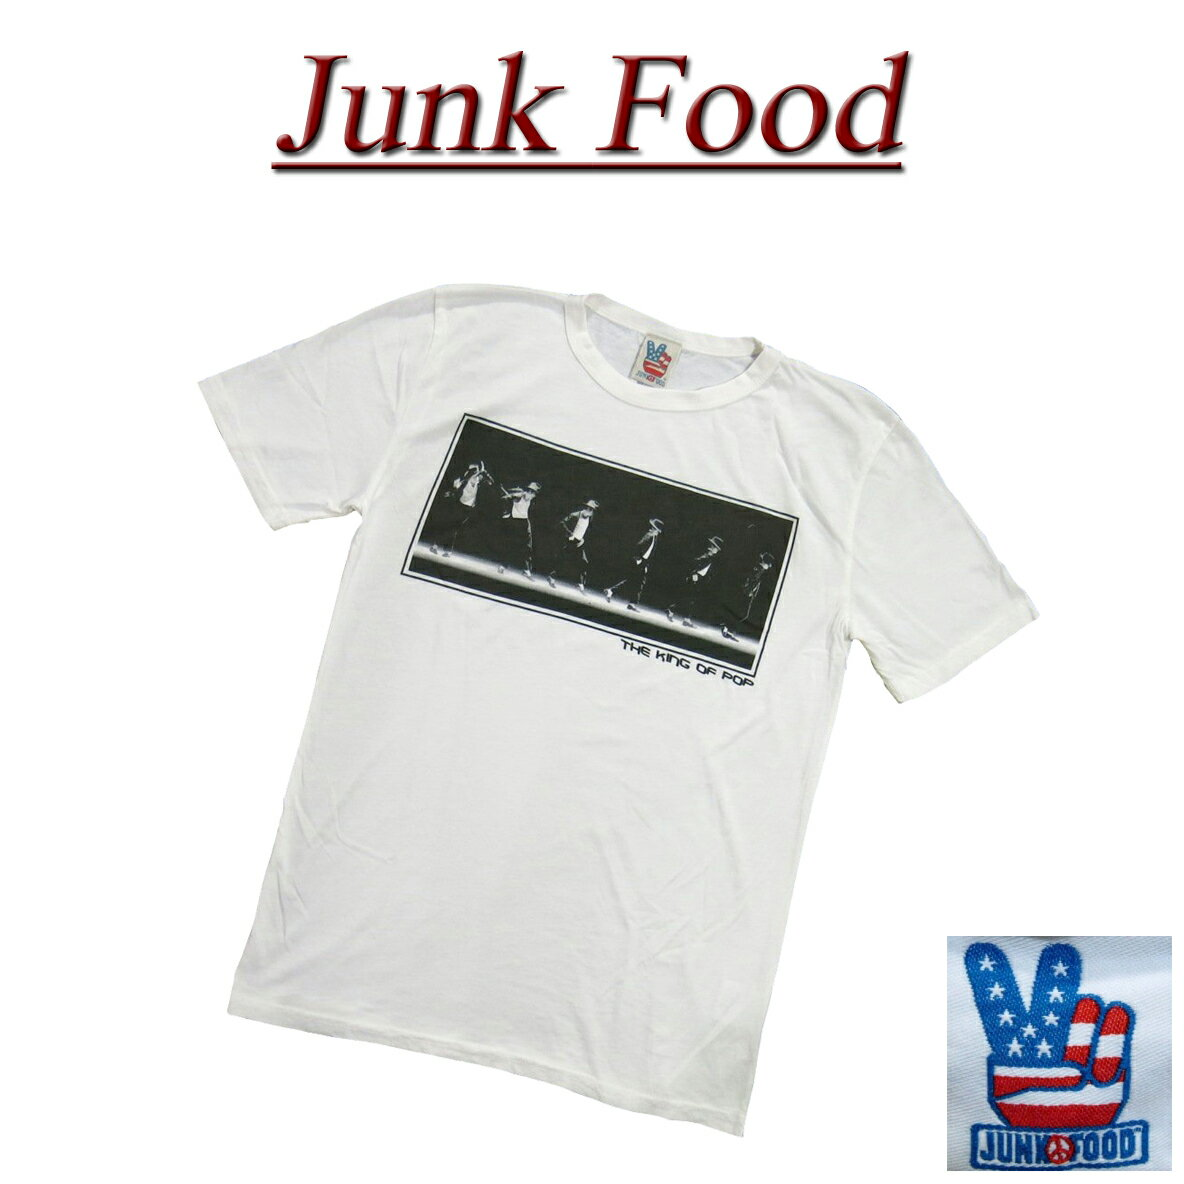 トップス, Tシャツ・カットソー  5 ac071 JUNK FOOD USA MICHAEL JACKSON T MJ023-7765 JunkFood MADE IN USA smtb-kd